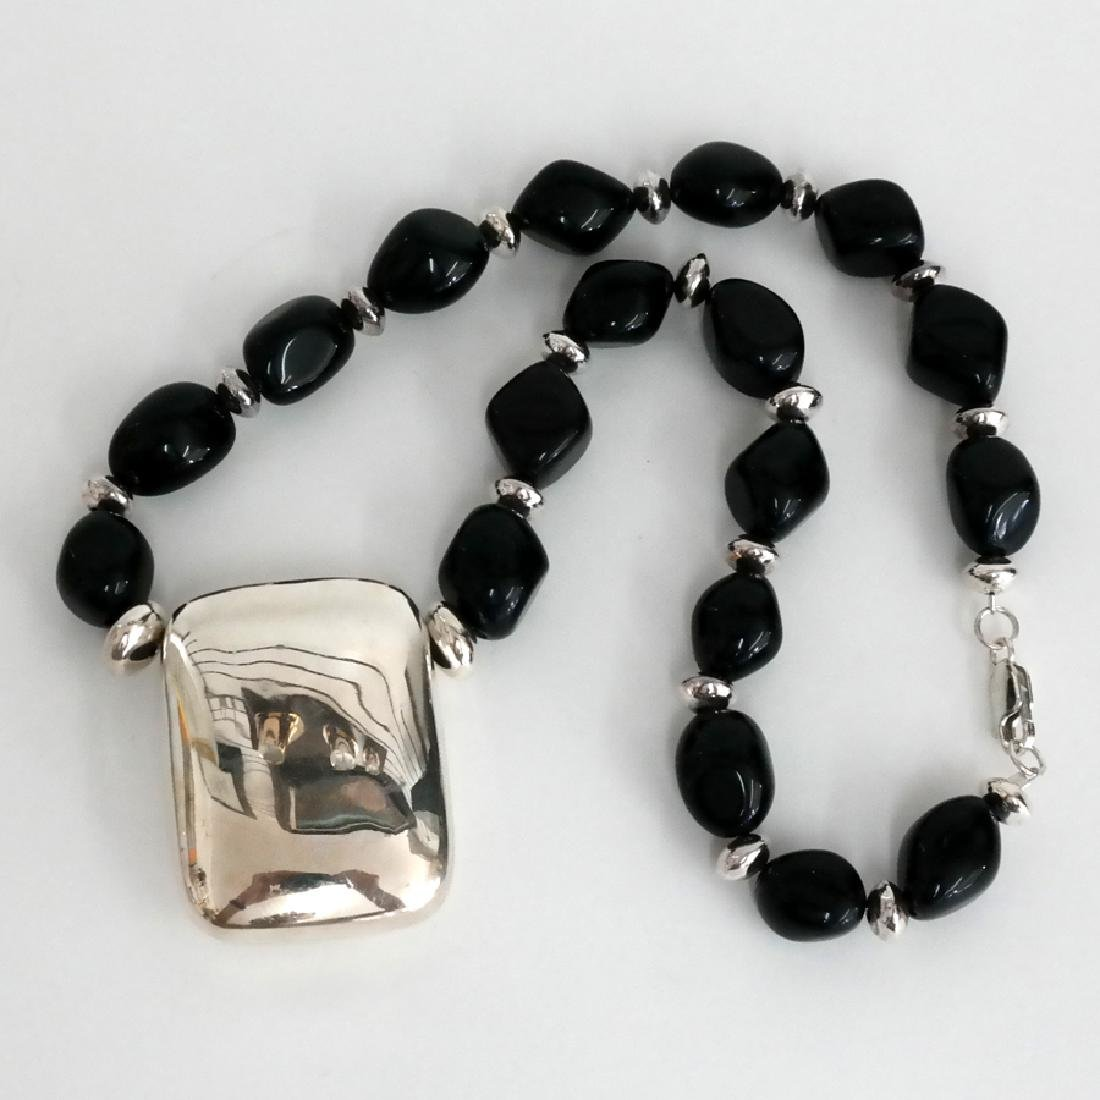 Black onyx free shape beads and sterling silver hollow - 2